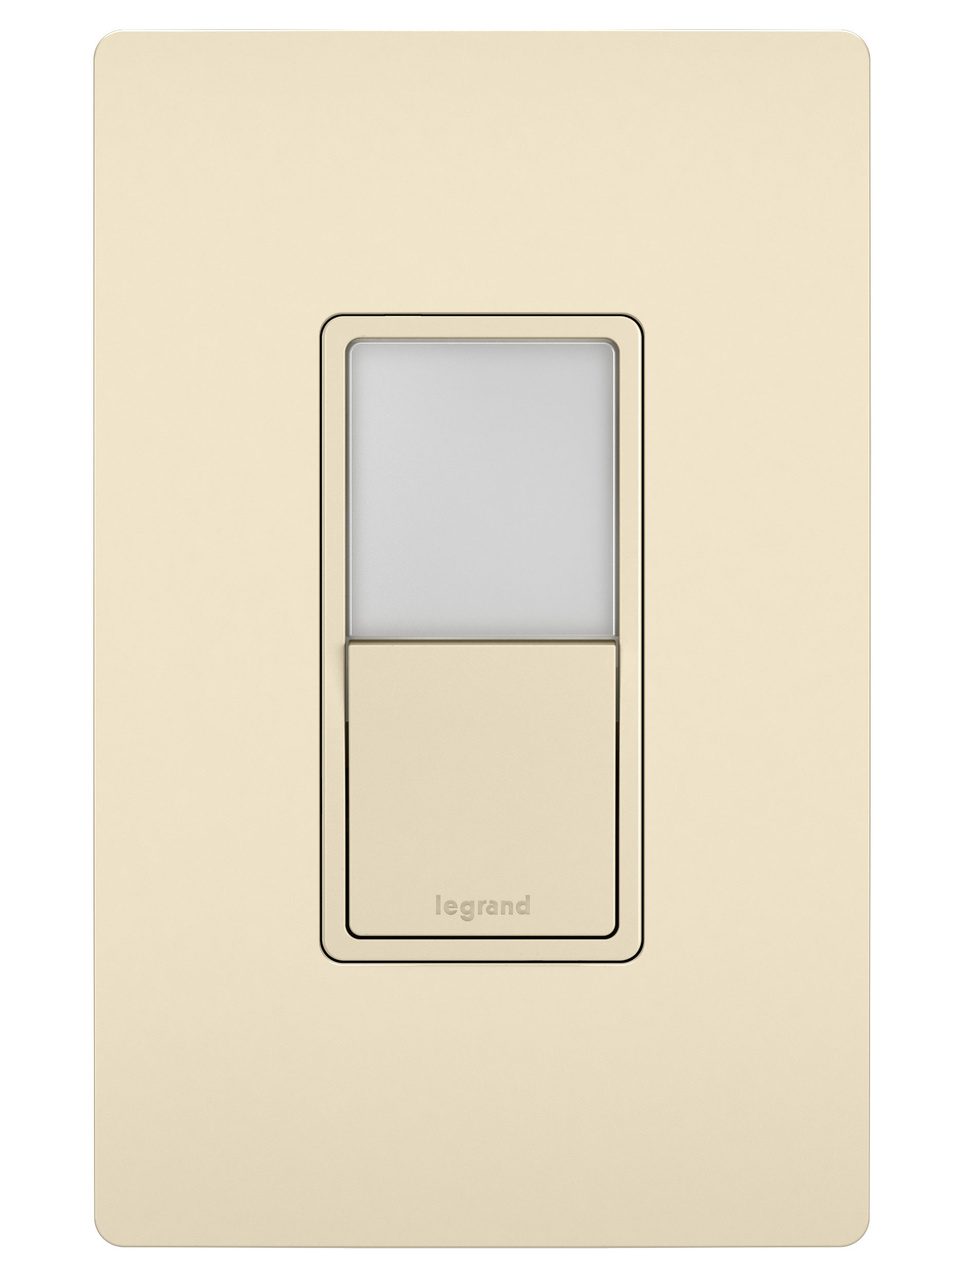 Night Light with Single-Pole, 3-Way Switch, Light Almond